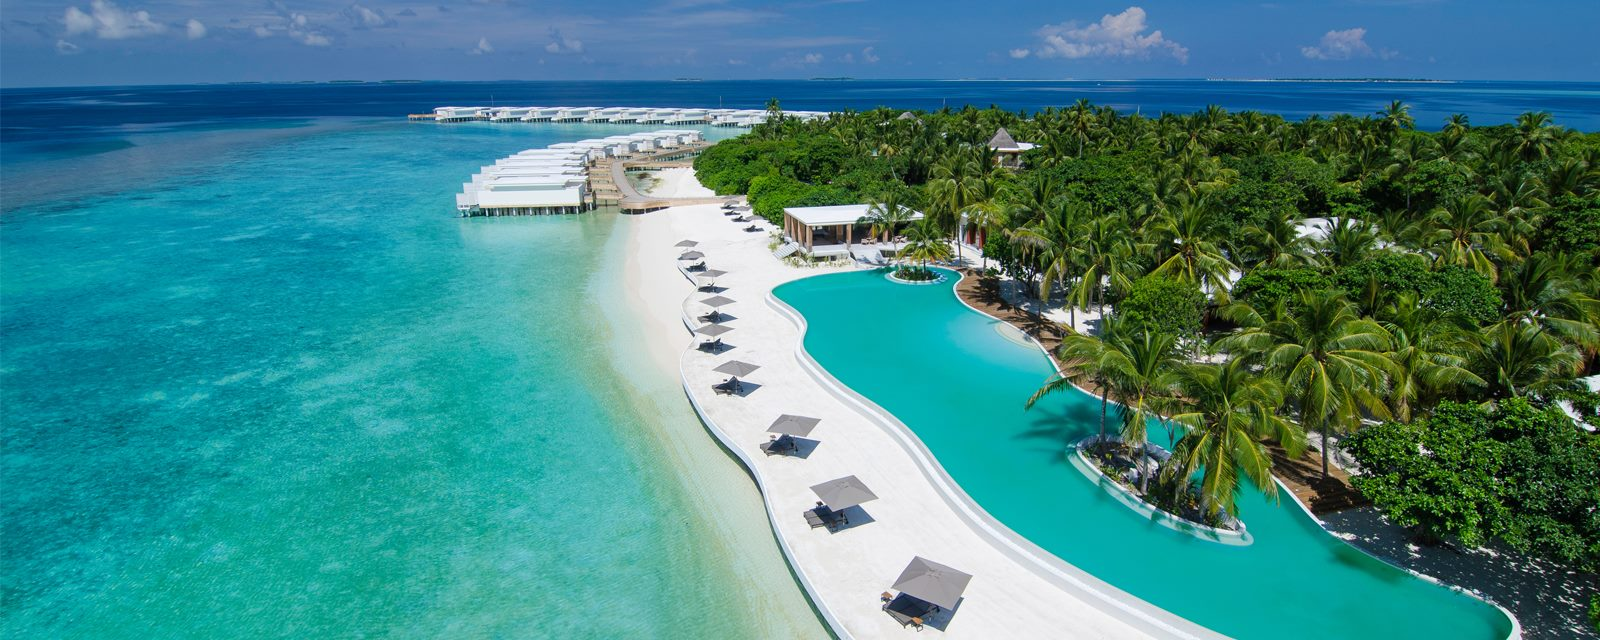 5 Hotels Maldives: Amilla Fushi | Love Daily Dose